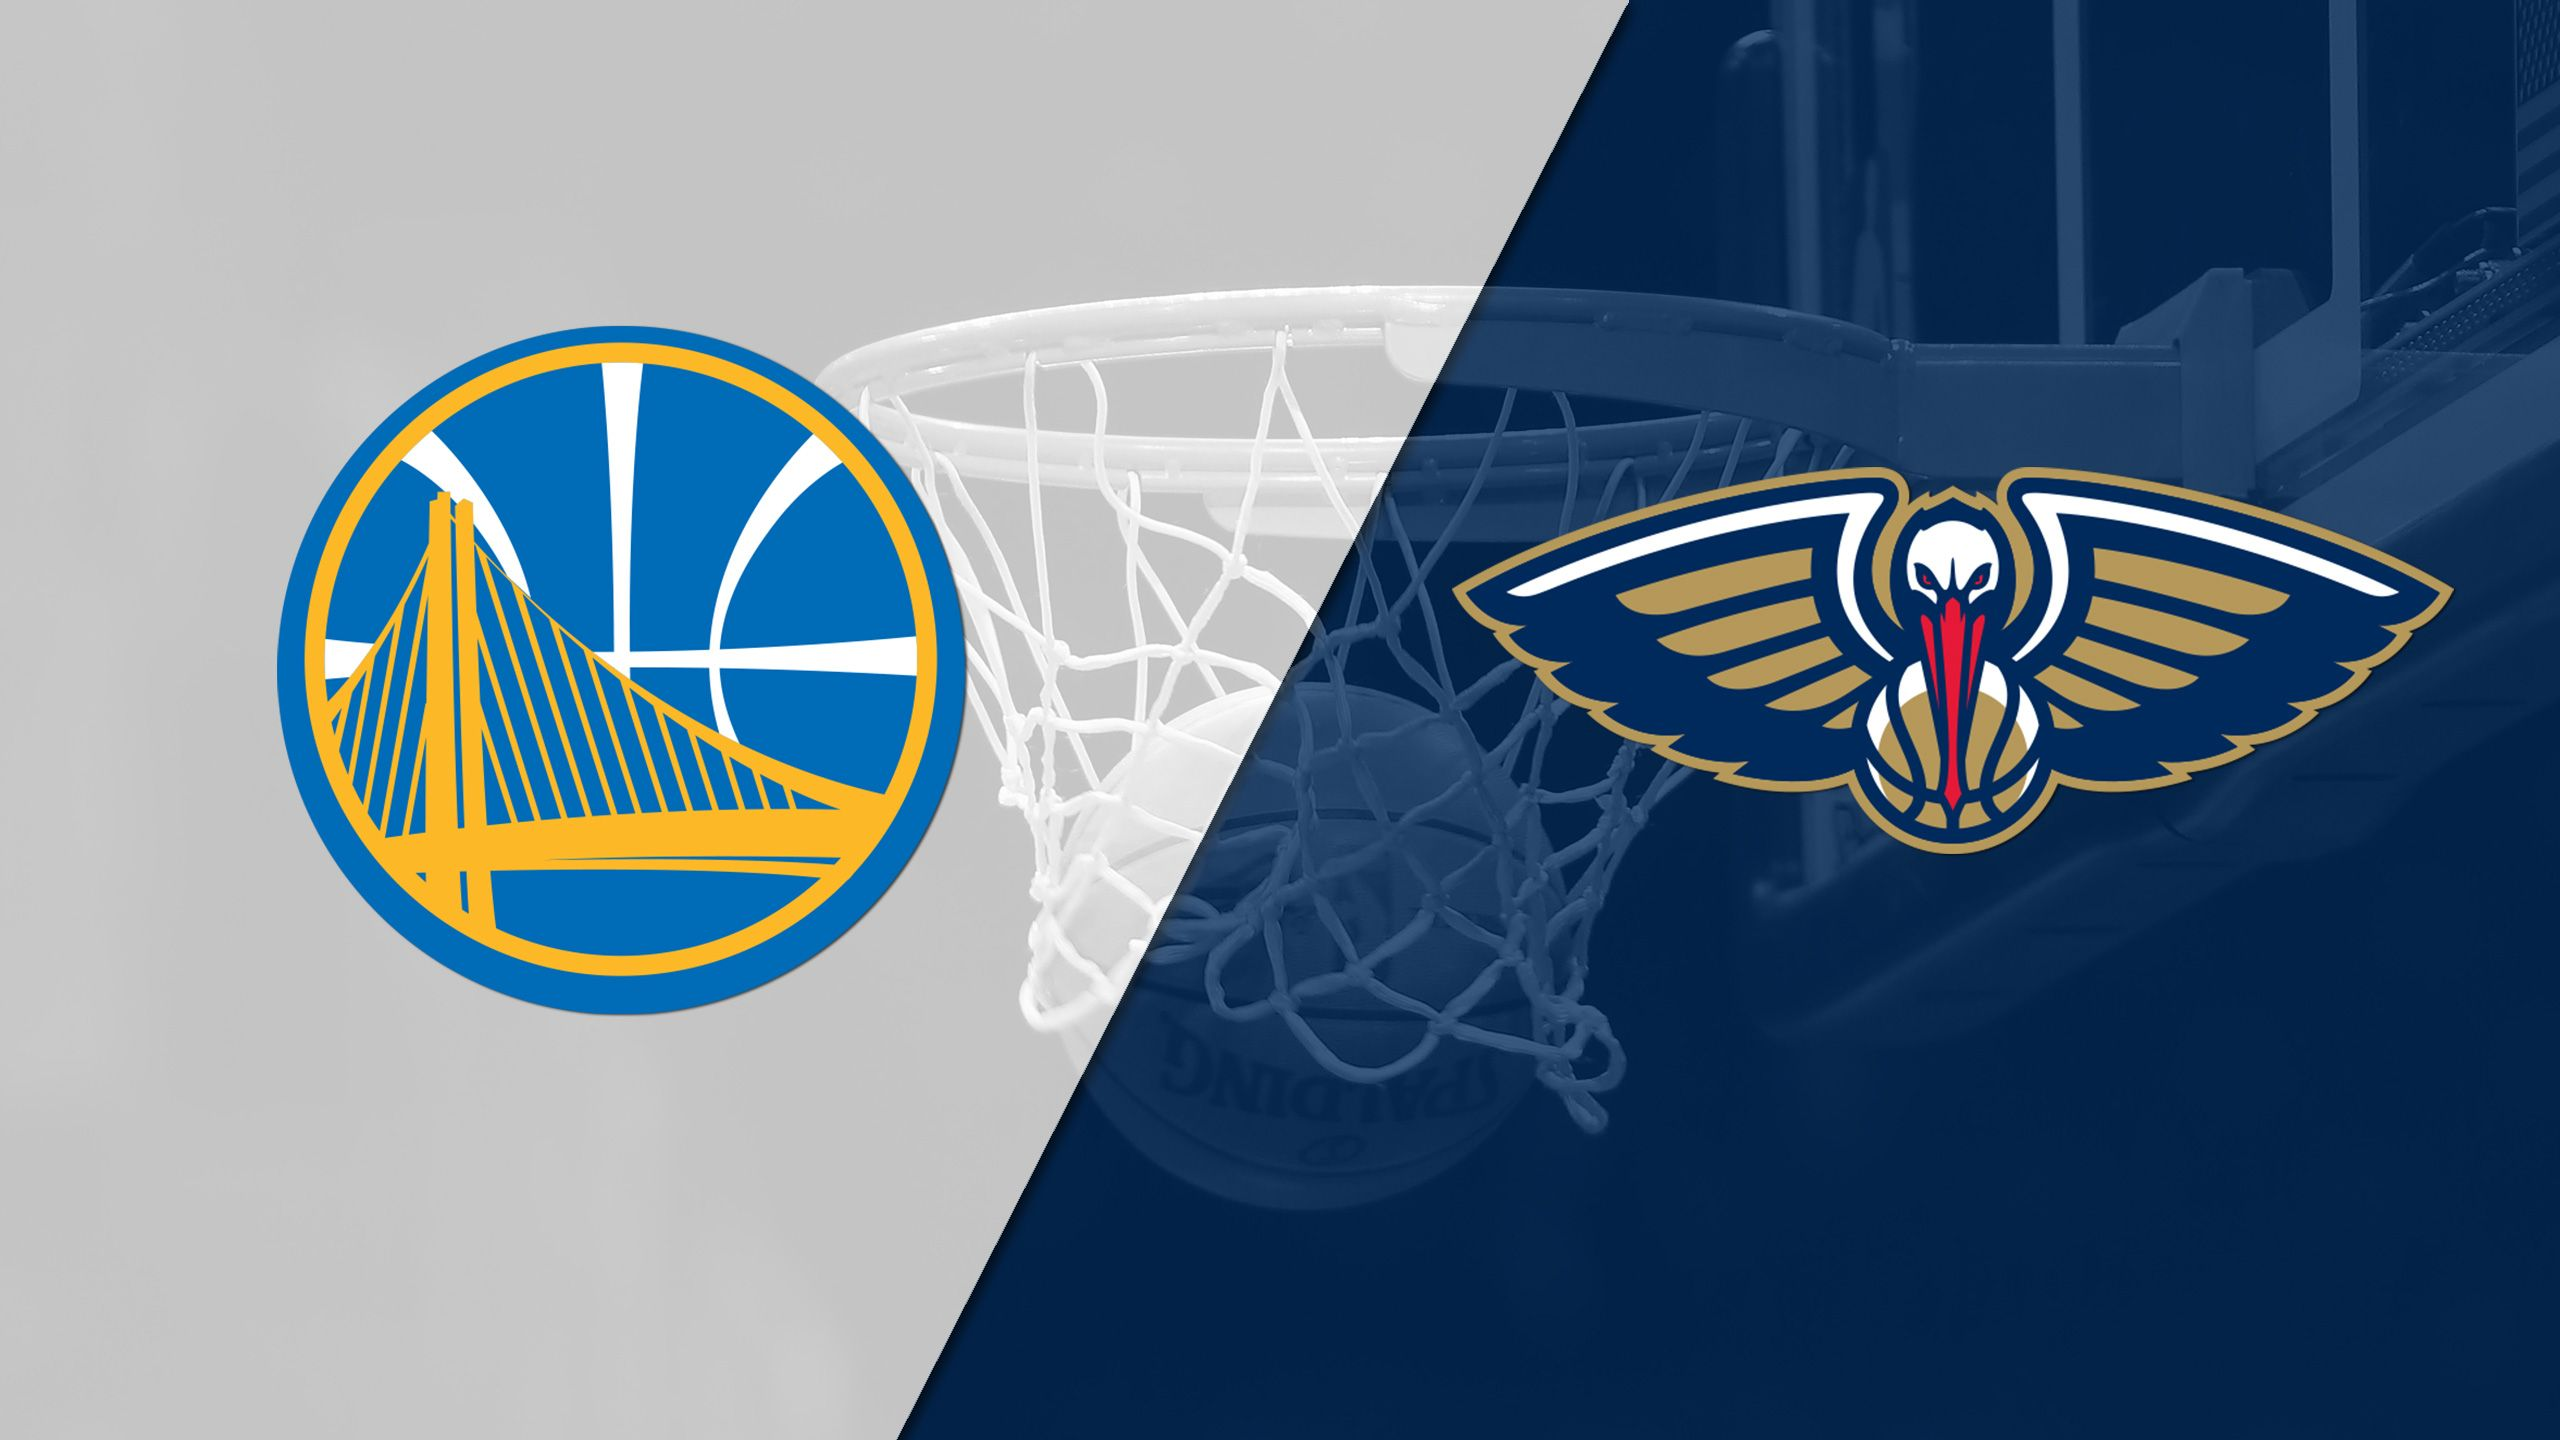 In Spanish - Golden State Warriors vs. New Orleans Pelicans